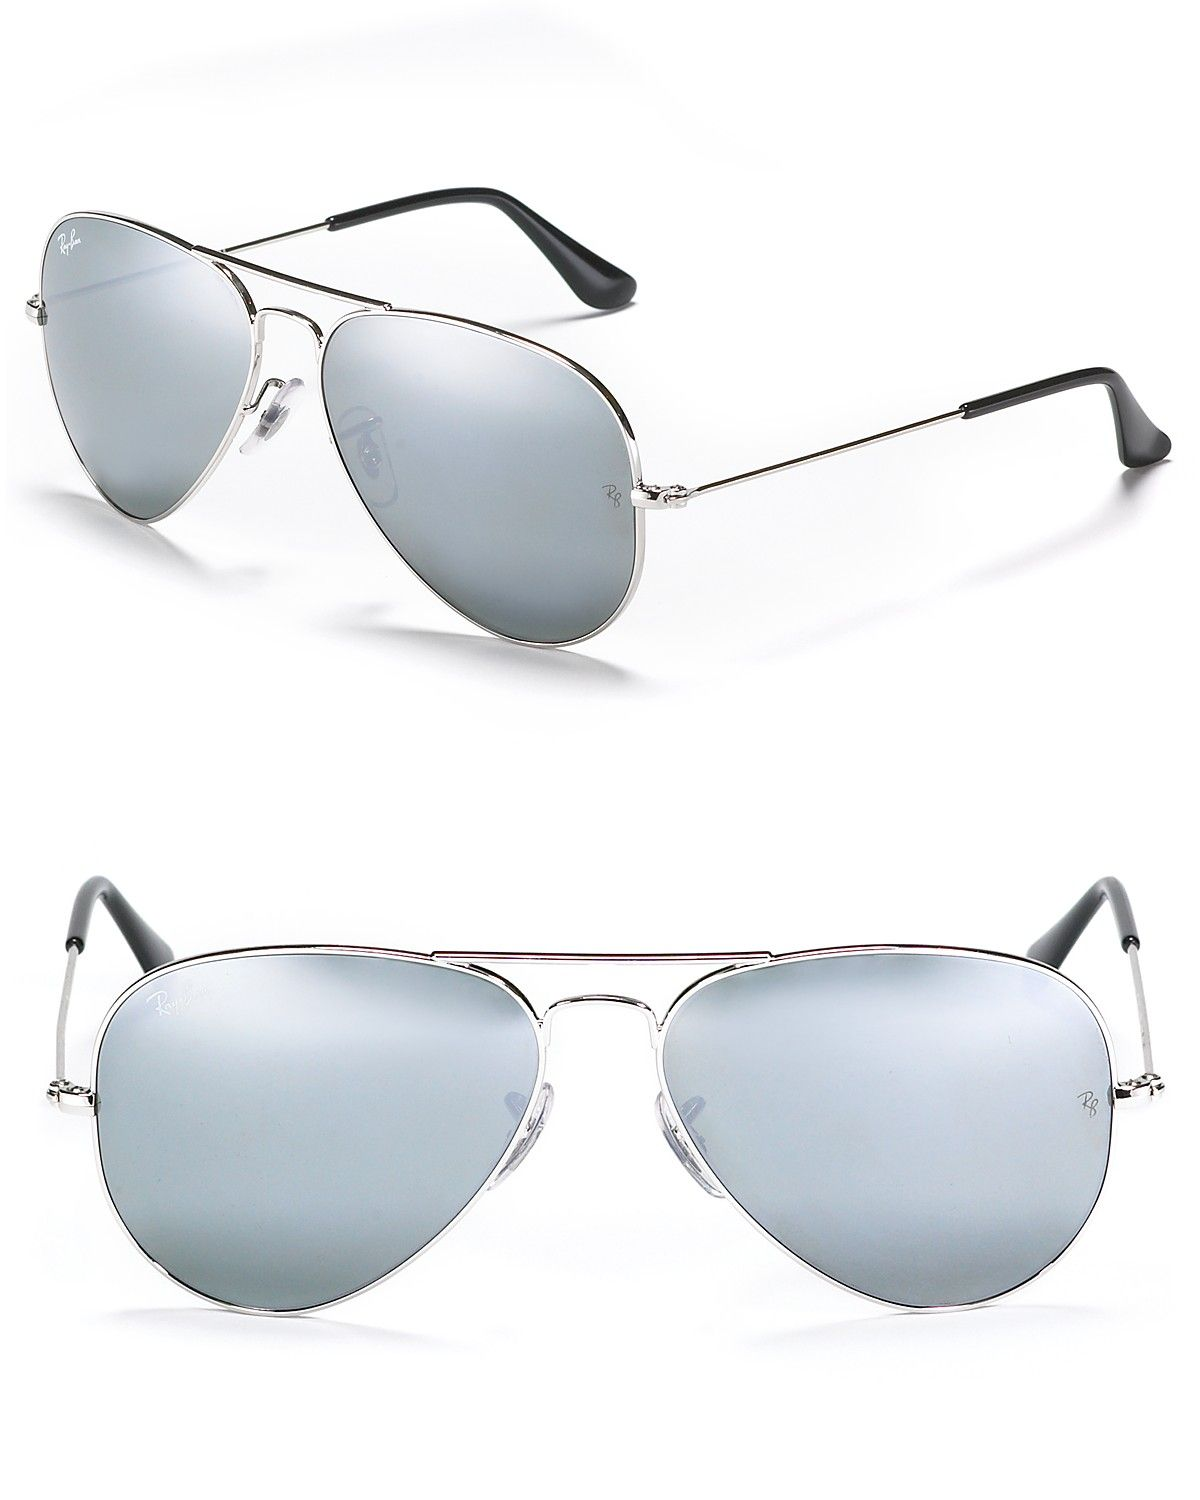 Ray ban sunglasses spare parts - Aviator Sunglasses For Men Mirrored Ray Ban Mirror Aviator Sunglasses Ficts